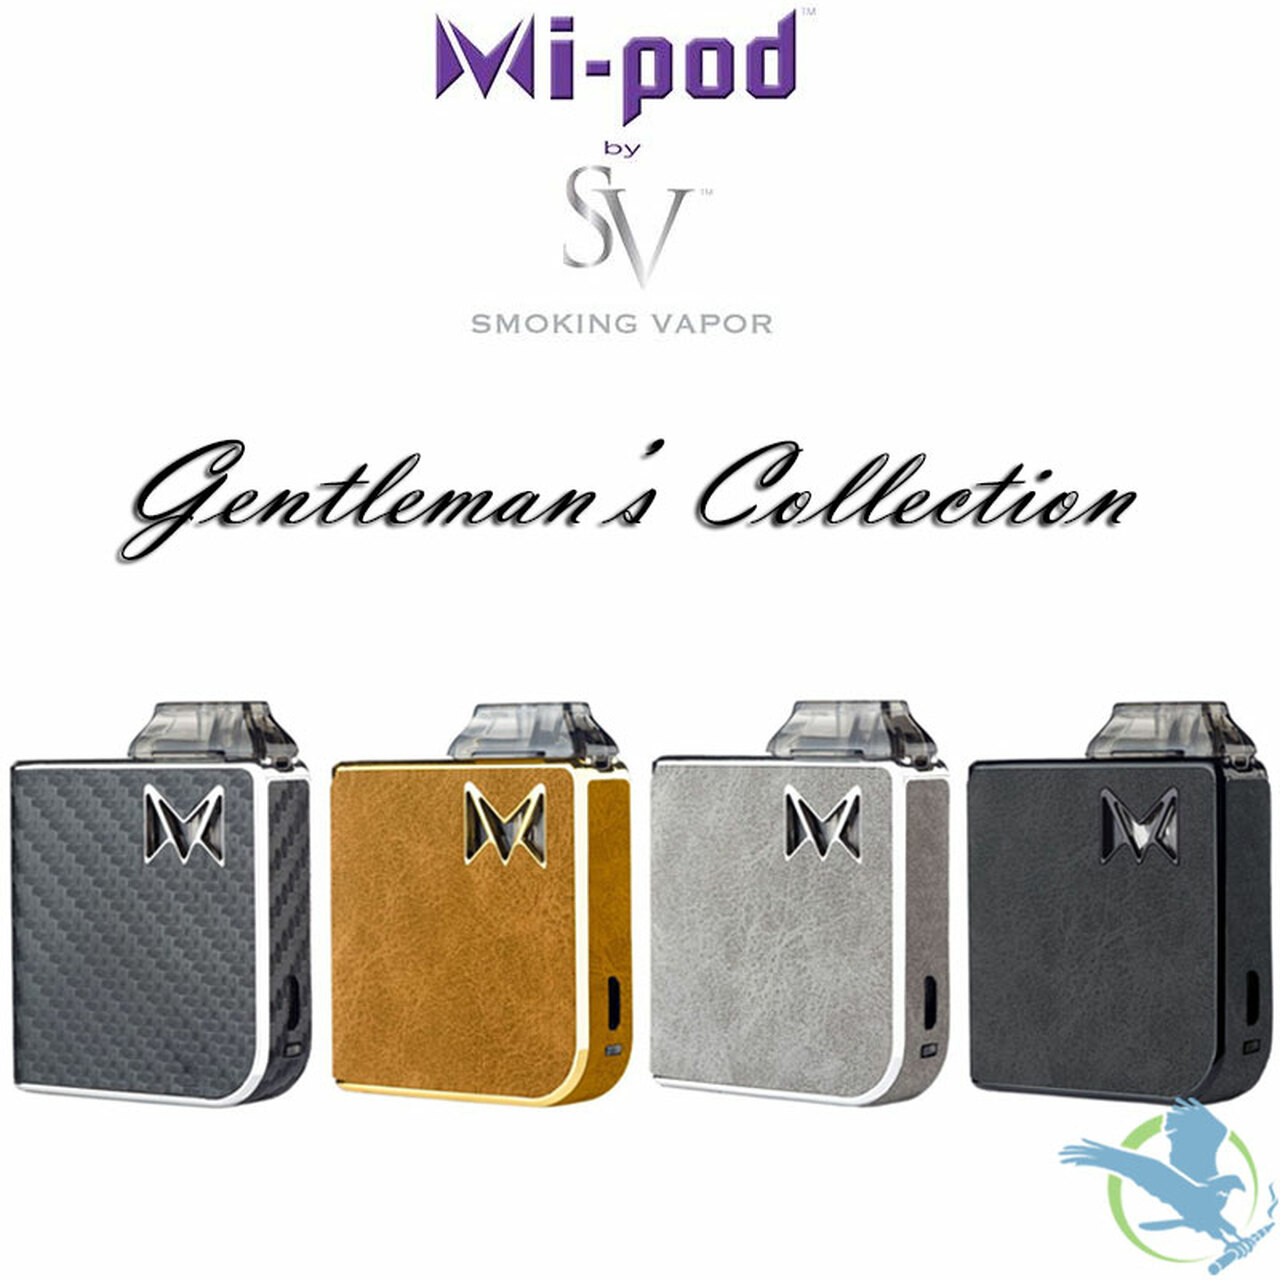 Smoking Vapor Limited Edition Mi-Pod Gentleman's Collection Pod System With  2 Refillable Pods ( MSRP $44 99)